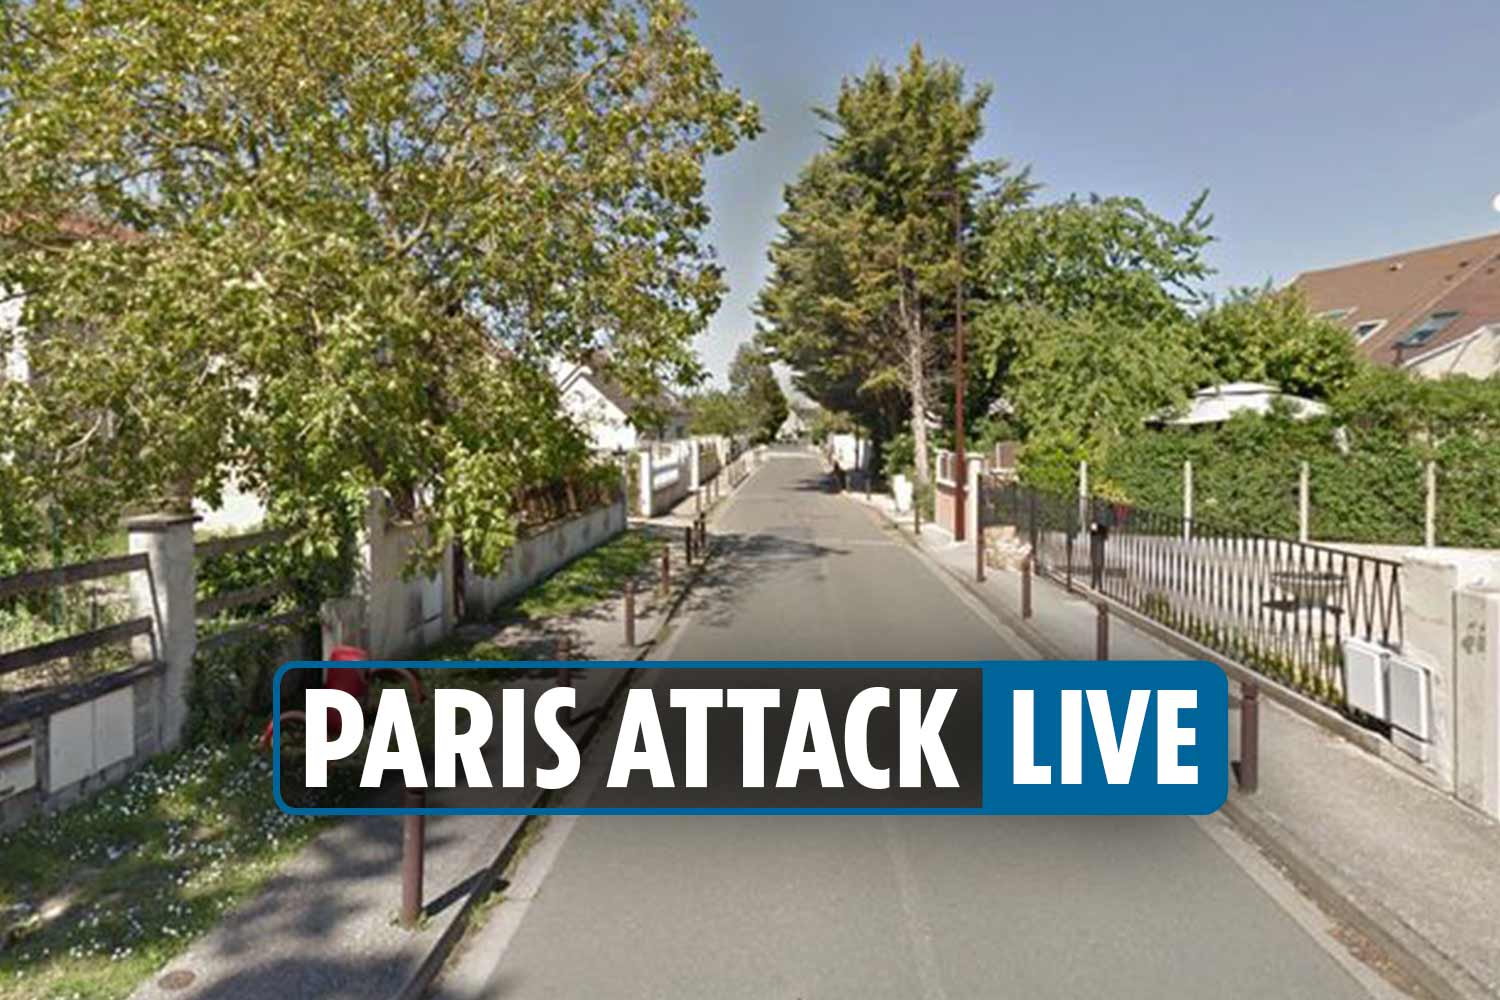 Paris beheading attack – Four arrested over jihadi 'beheading' teacher over prophet Mohammed cartoon